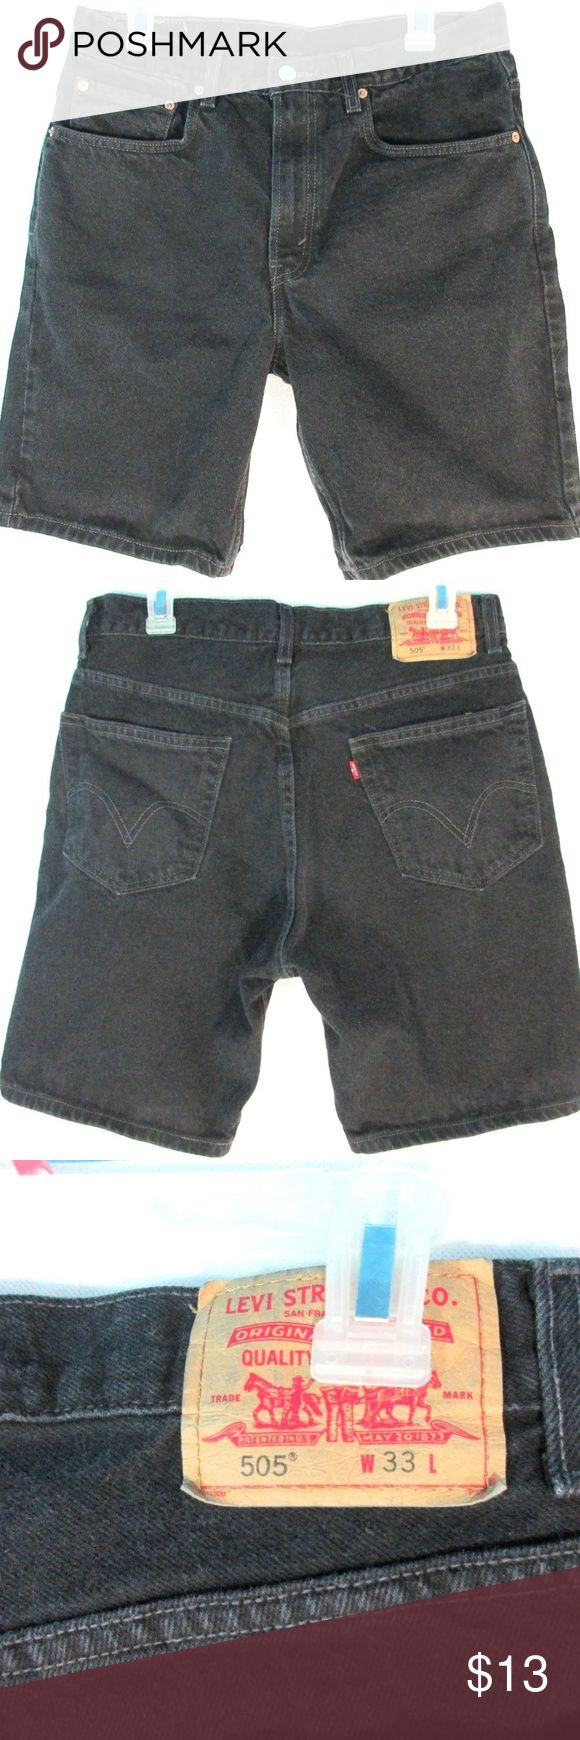 Men's Levi's 505 Jean Shorts Size 33 Black Denim Men's Levi's 505 Jean Shorts Size 33 Black Denim. Normal wear but in good condition with no rips or stains.  Tag Size: W 33 Levi's Shorts Jean Shorts